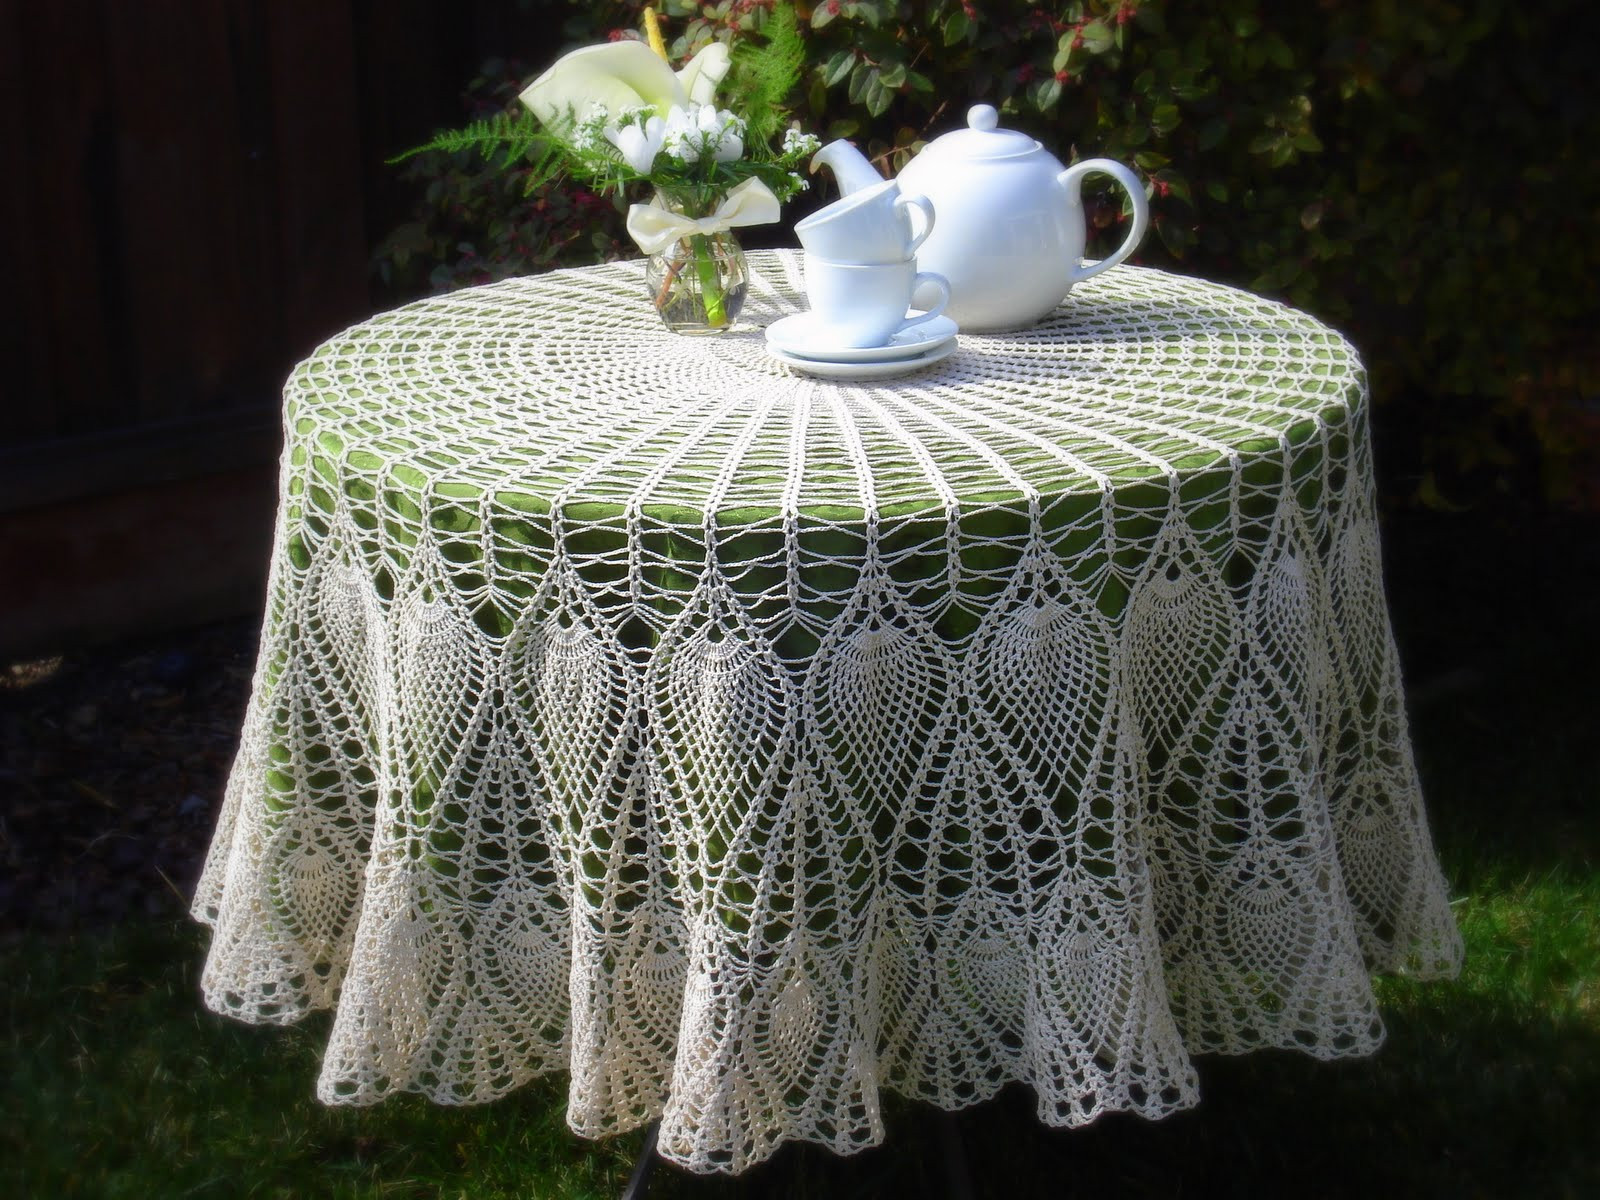 Crochet Round Tablecloth Pattern Free Elegant Lacy Crochet Tablecloth Update Of Incredible 48 Pictures Crochet Round Tablecloth Pattern Free